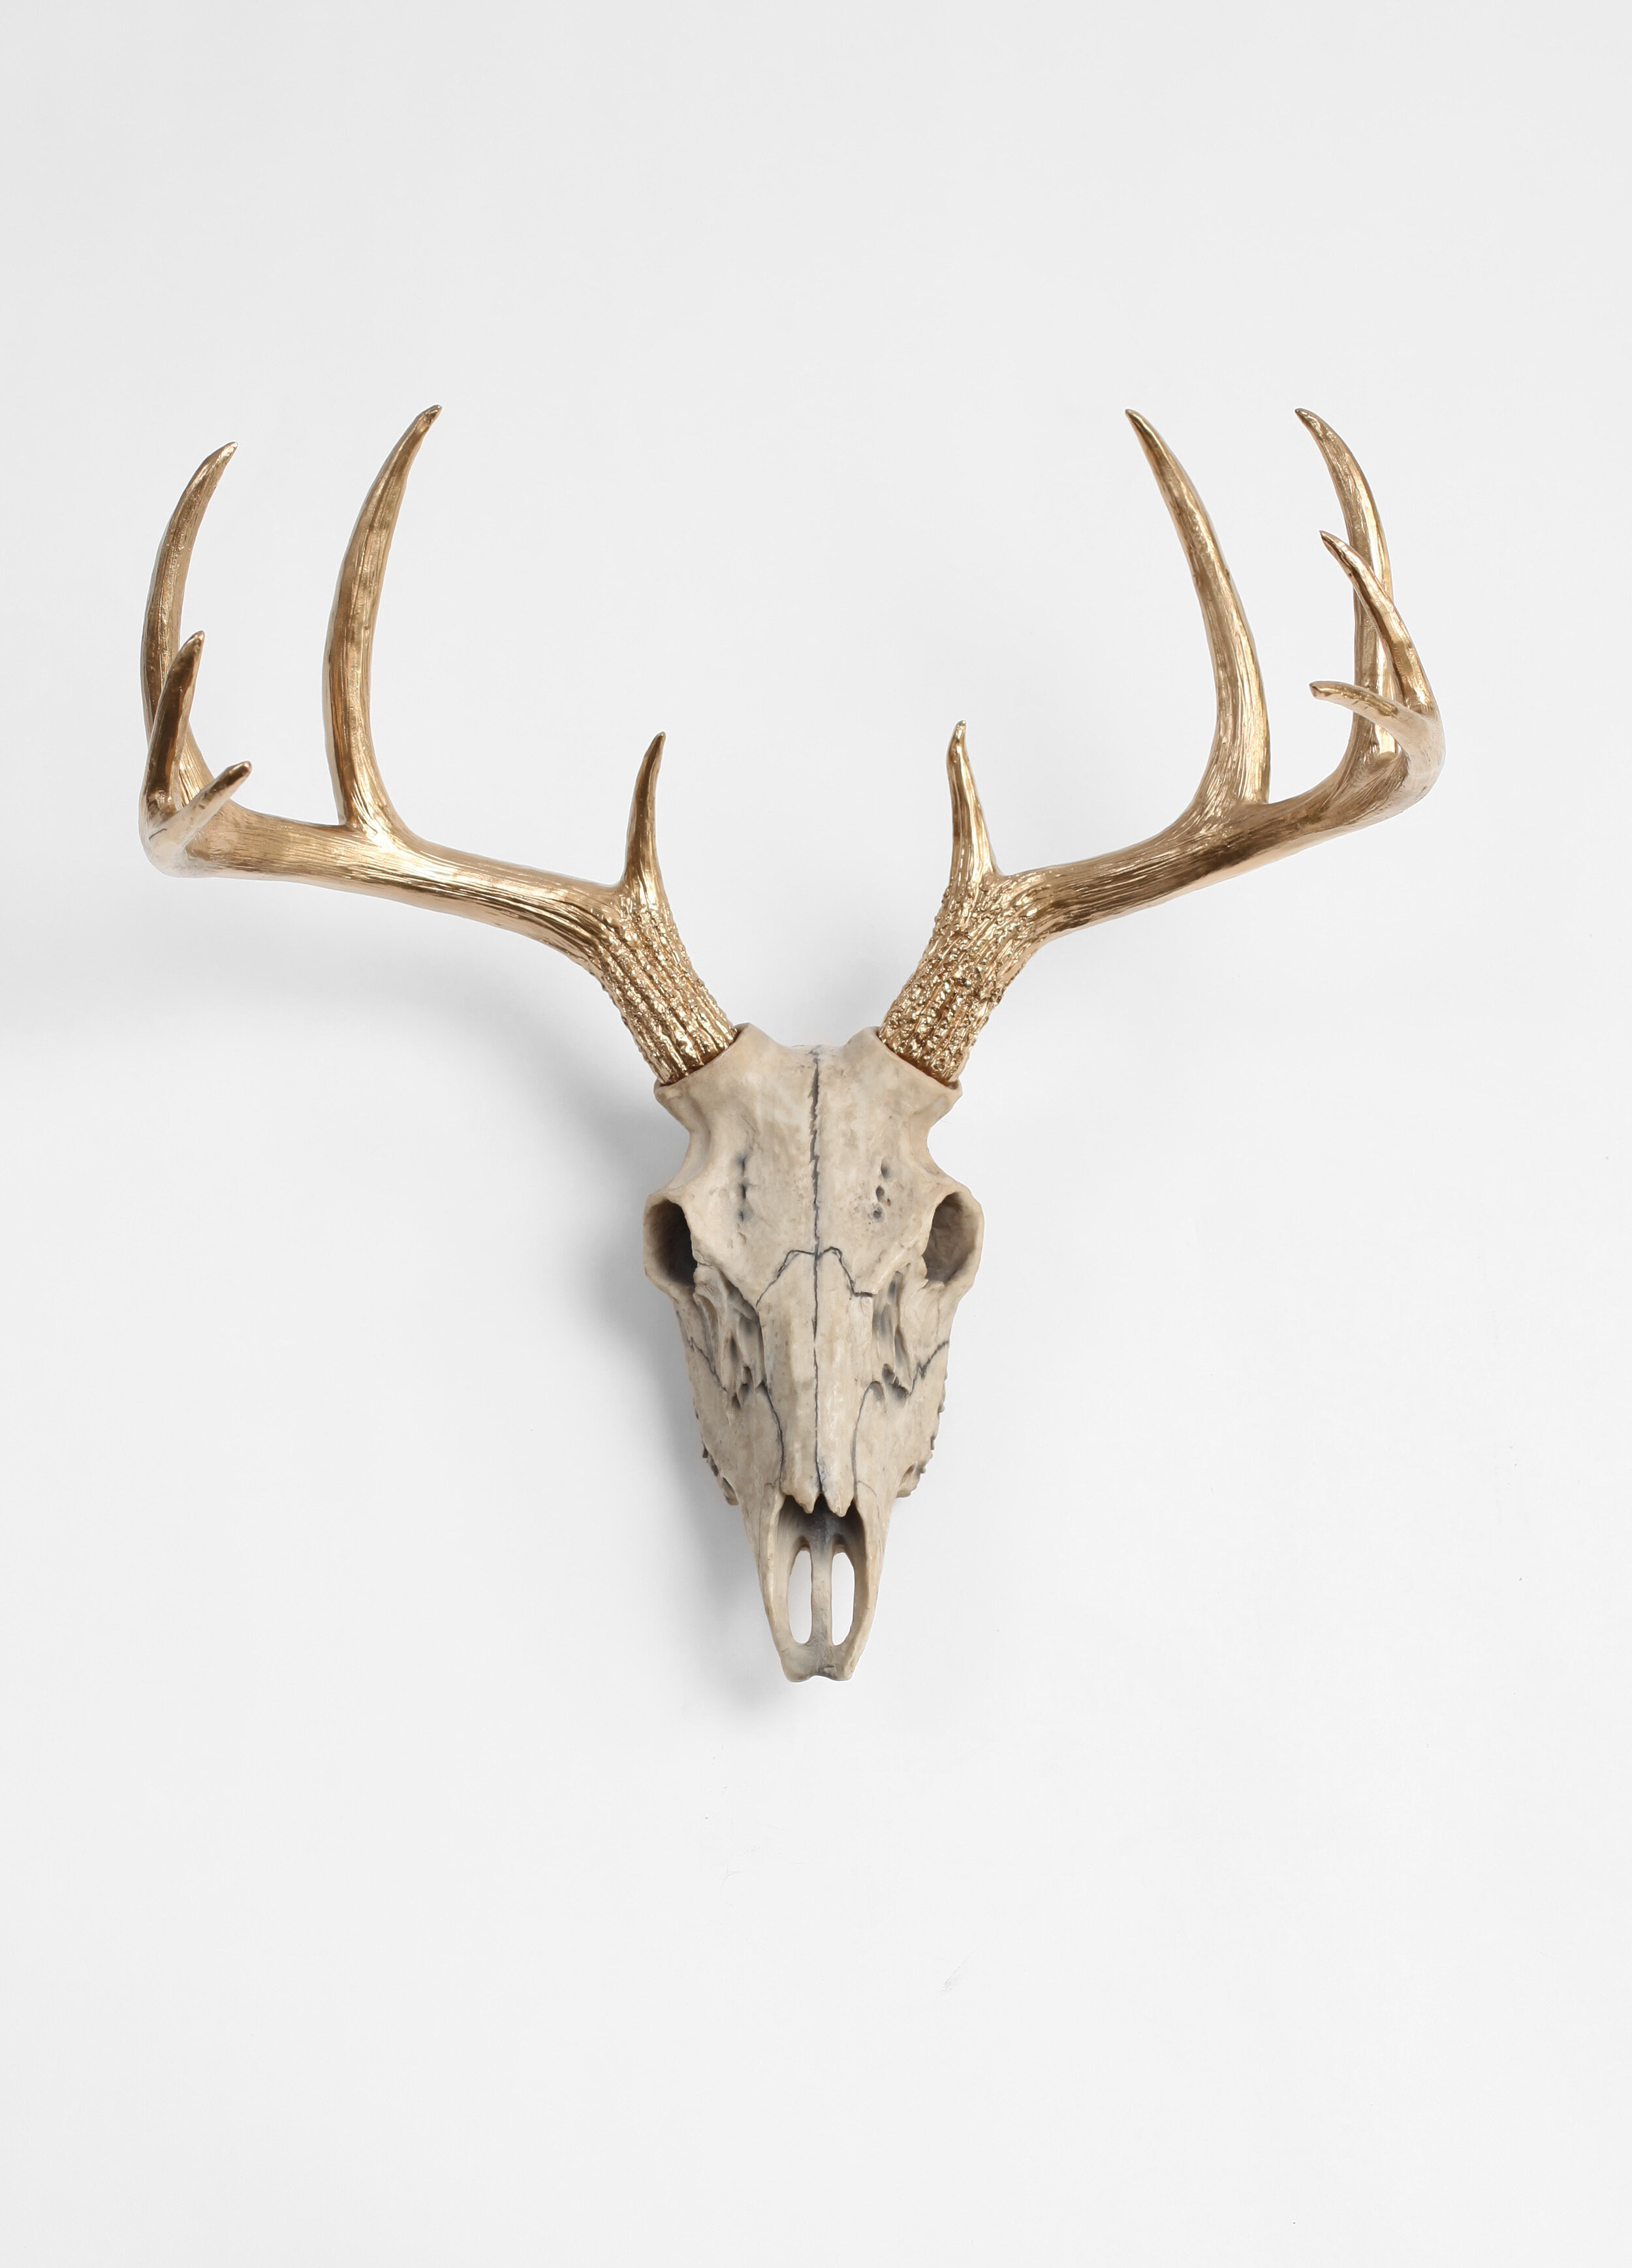 Union Rustic Natural Deer Skull With